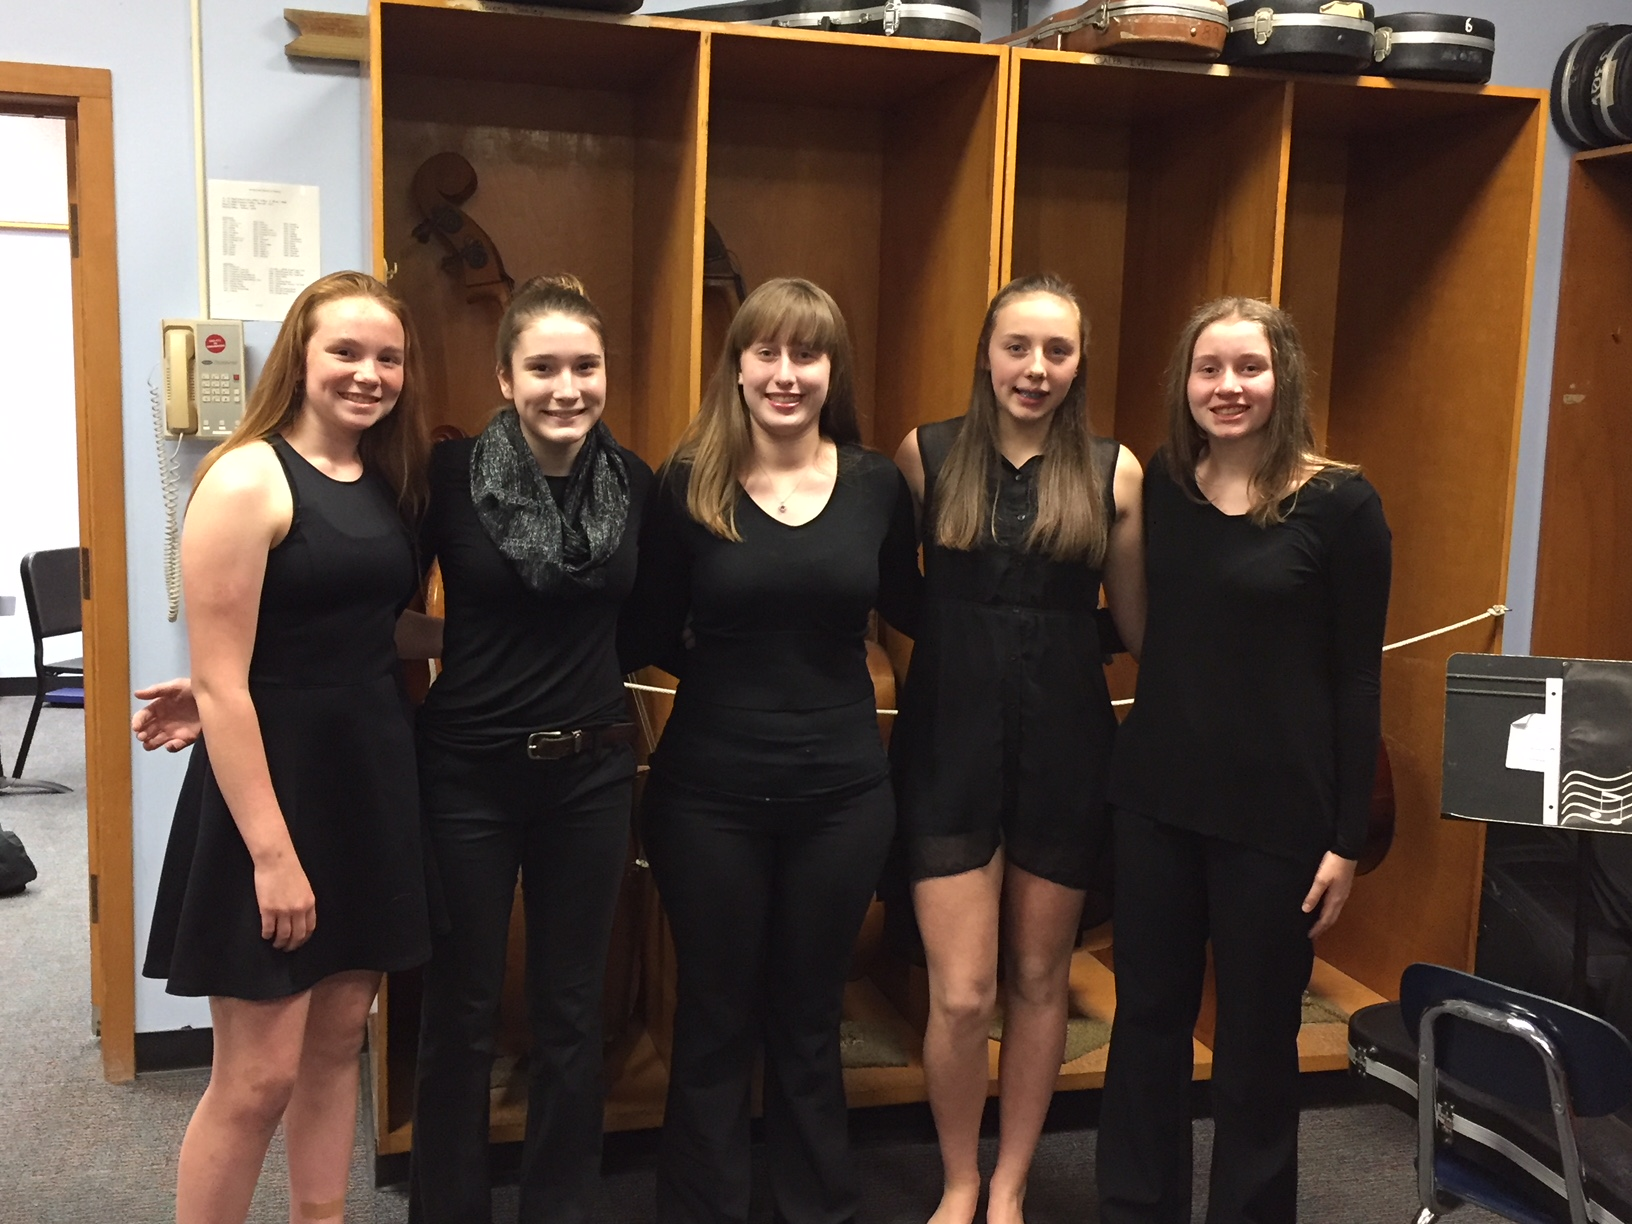 Girls ready for concert!